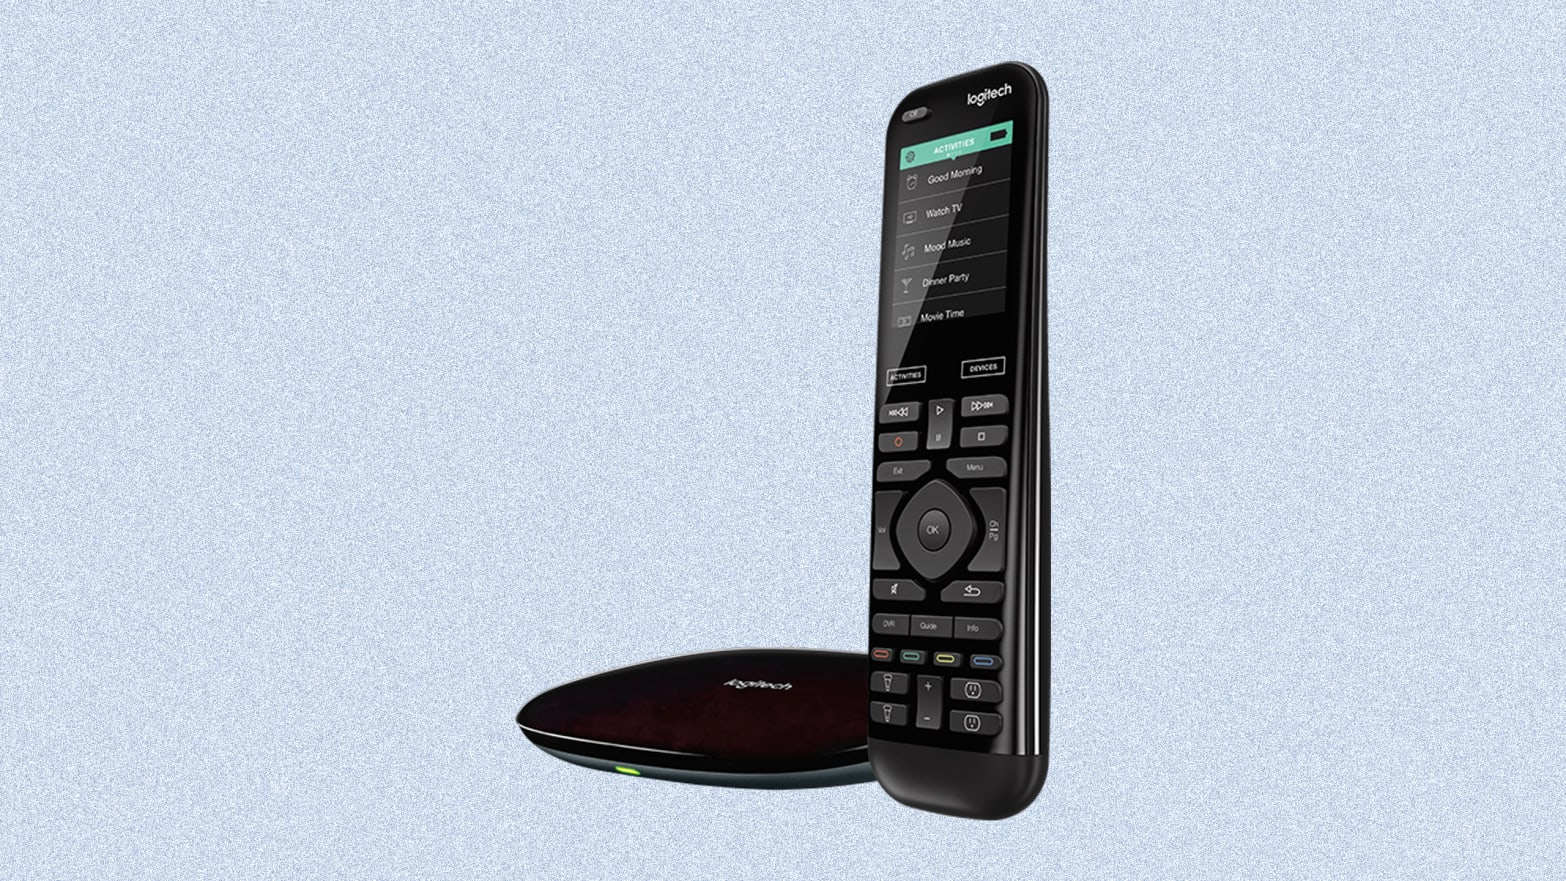 cb71ee054d9 The Logitech Harmony Elite Is the Universal Remote That Can Control Almost  Every Device You Own